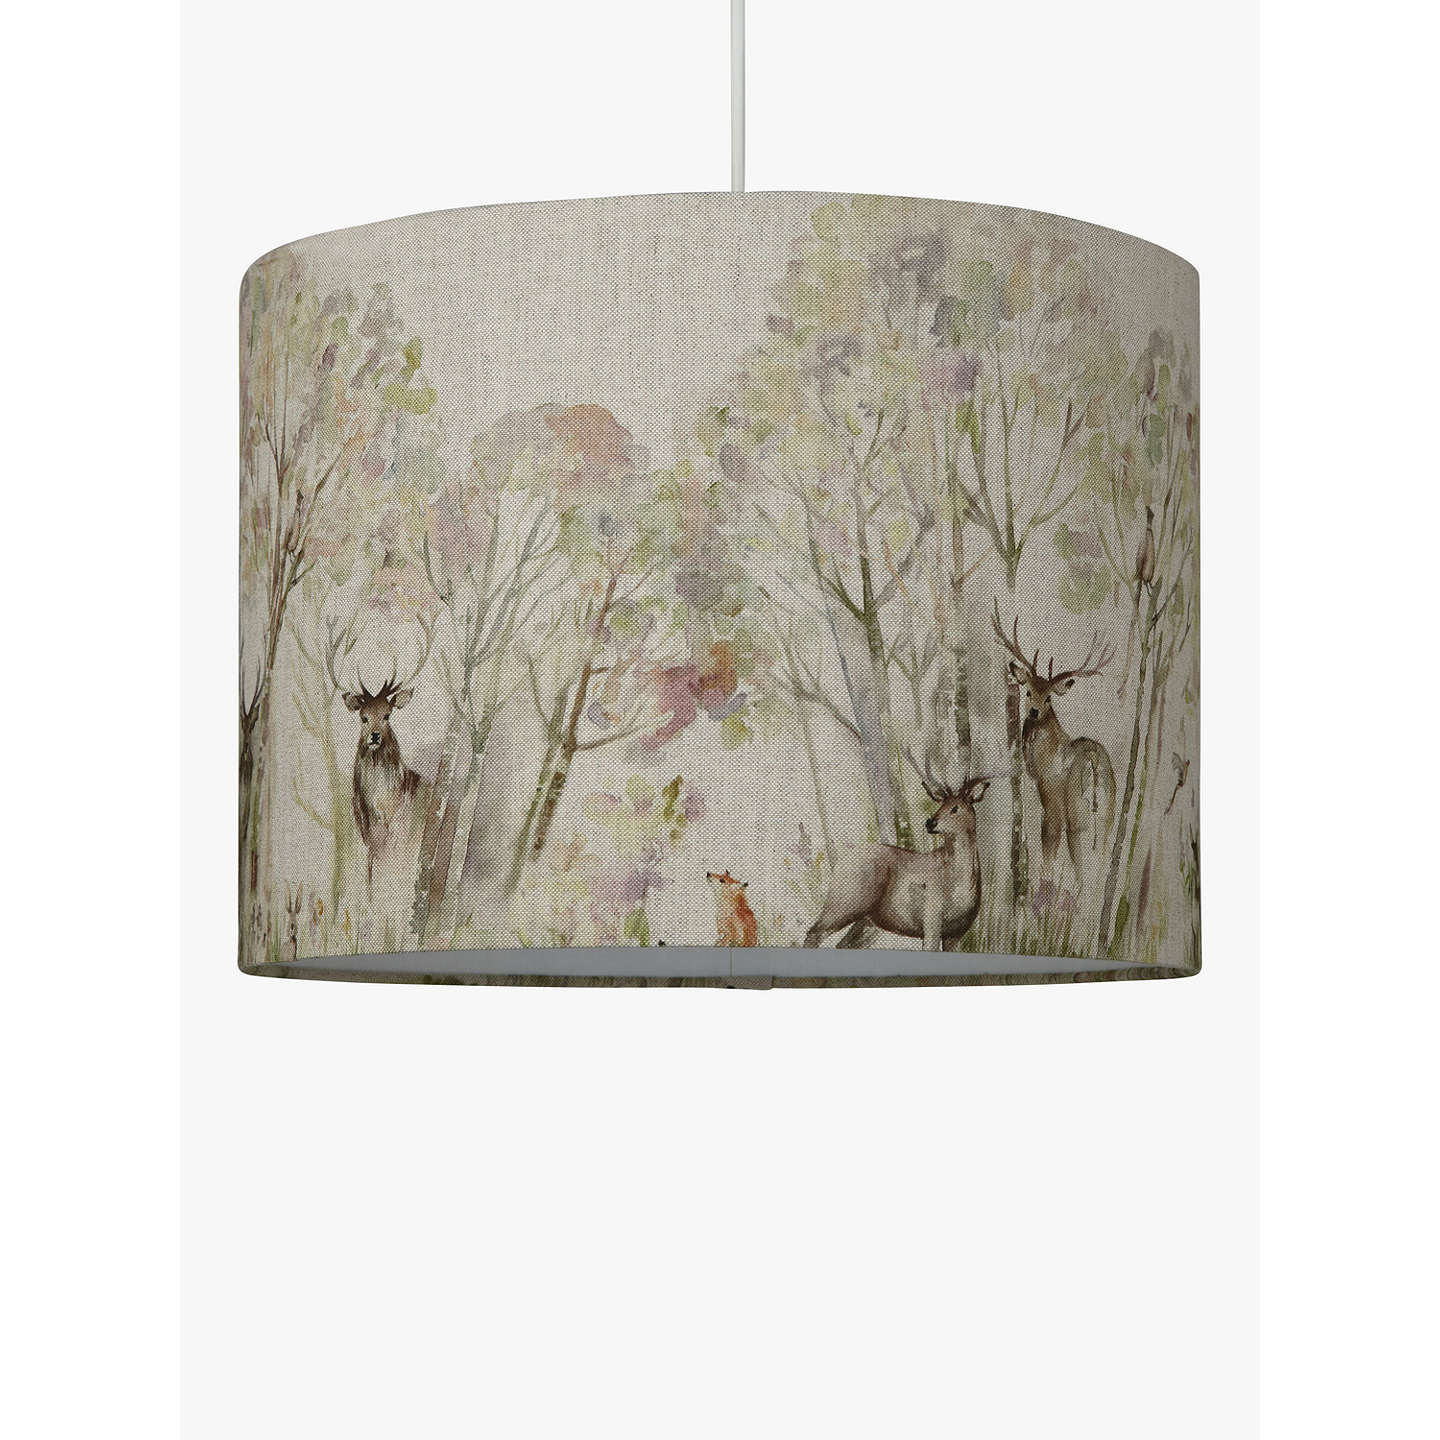 BuyVoyage Enchanted Forest Lampshade, Dia.30cm Online at johnlewis.com